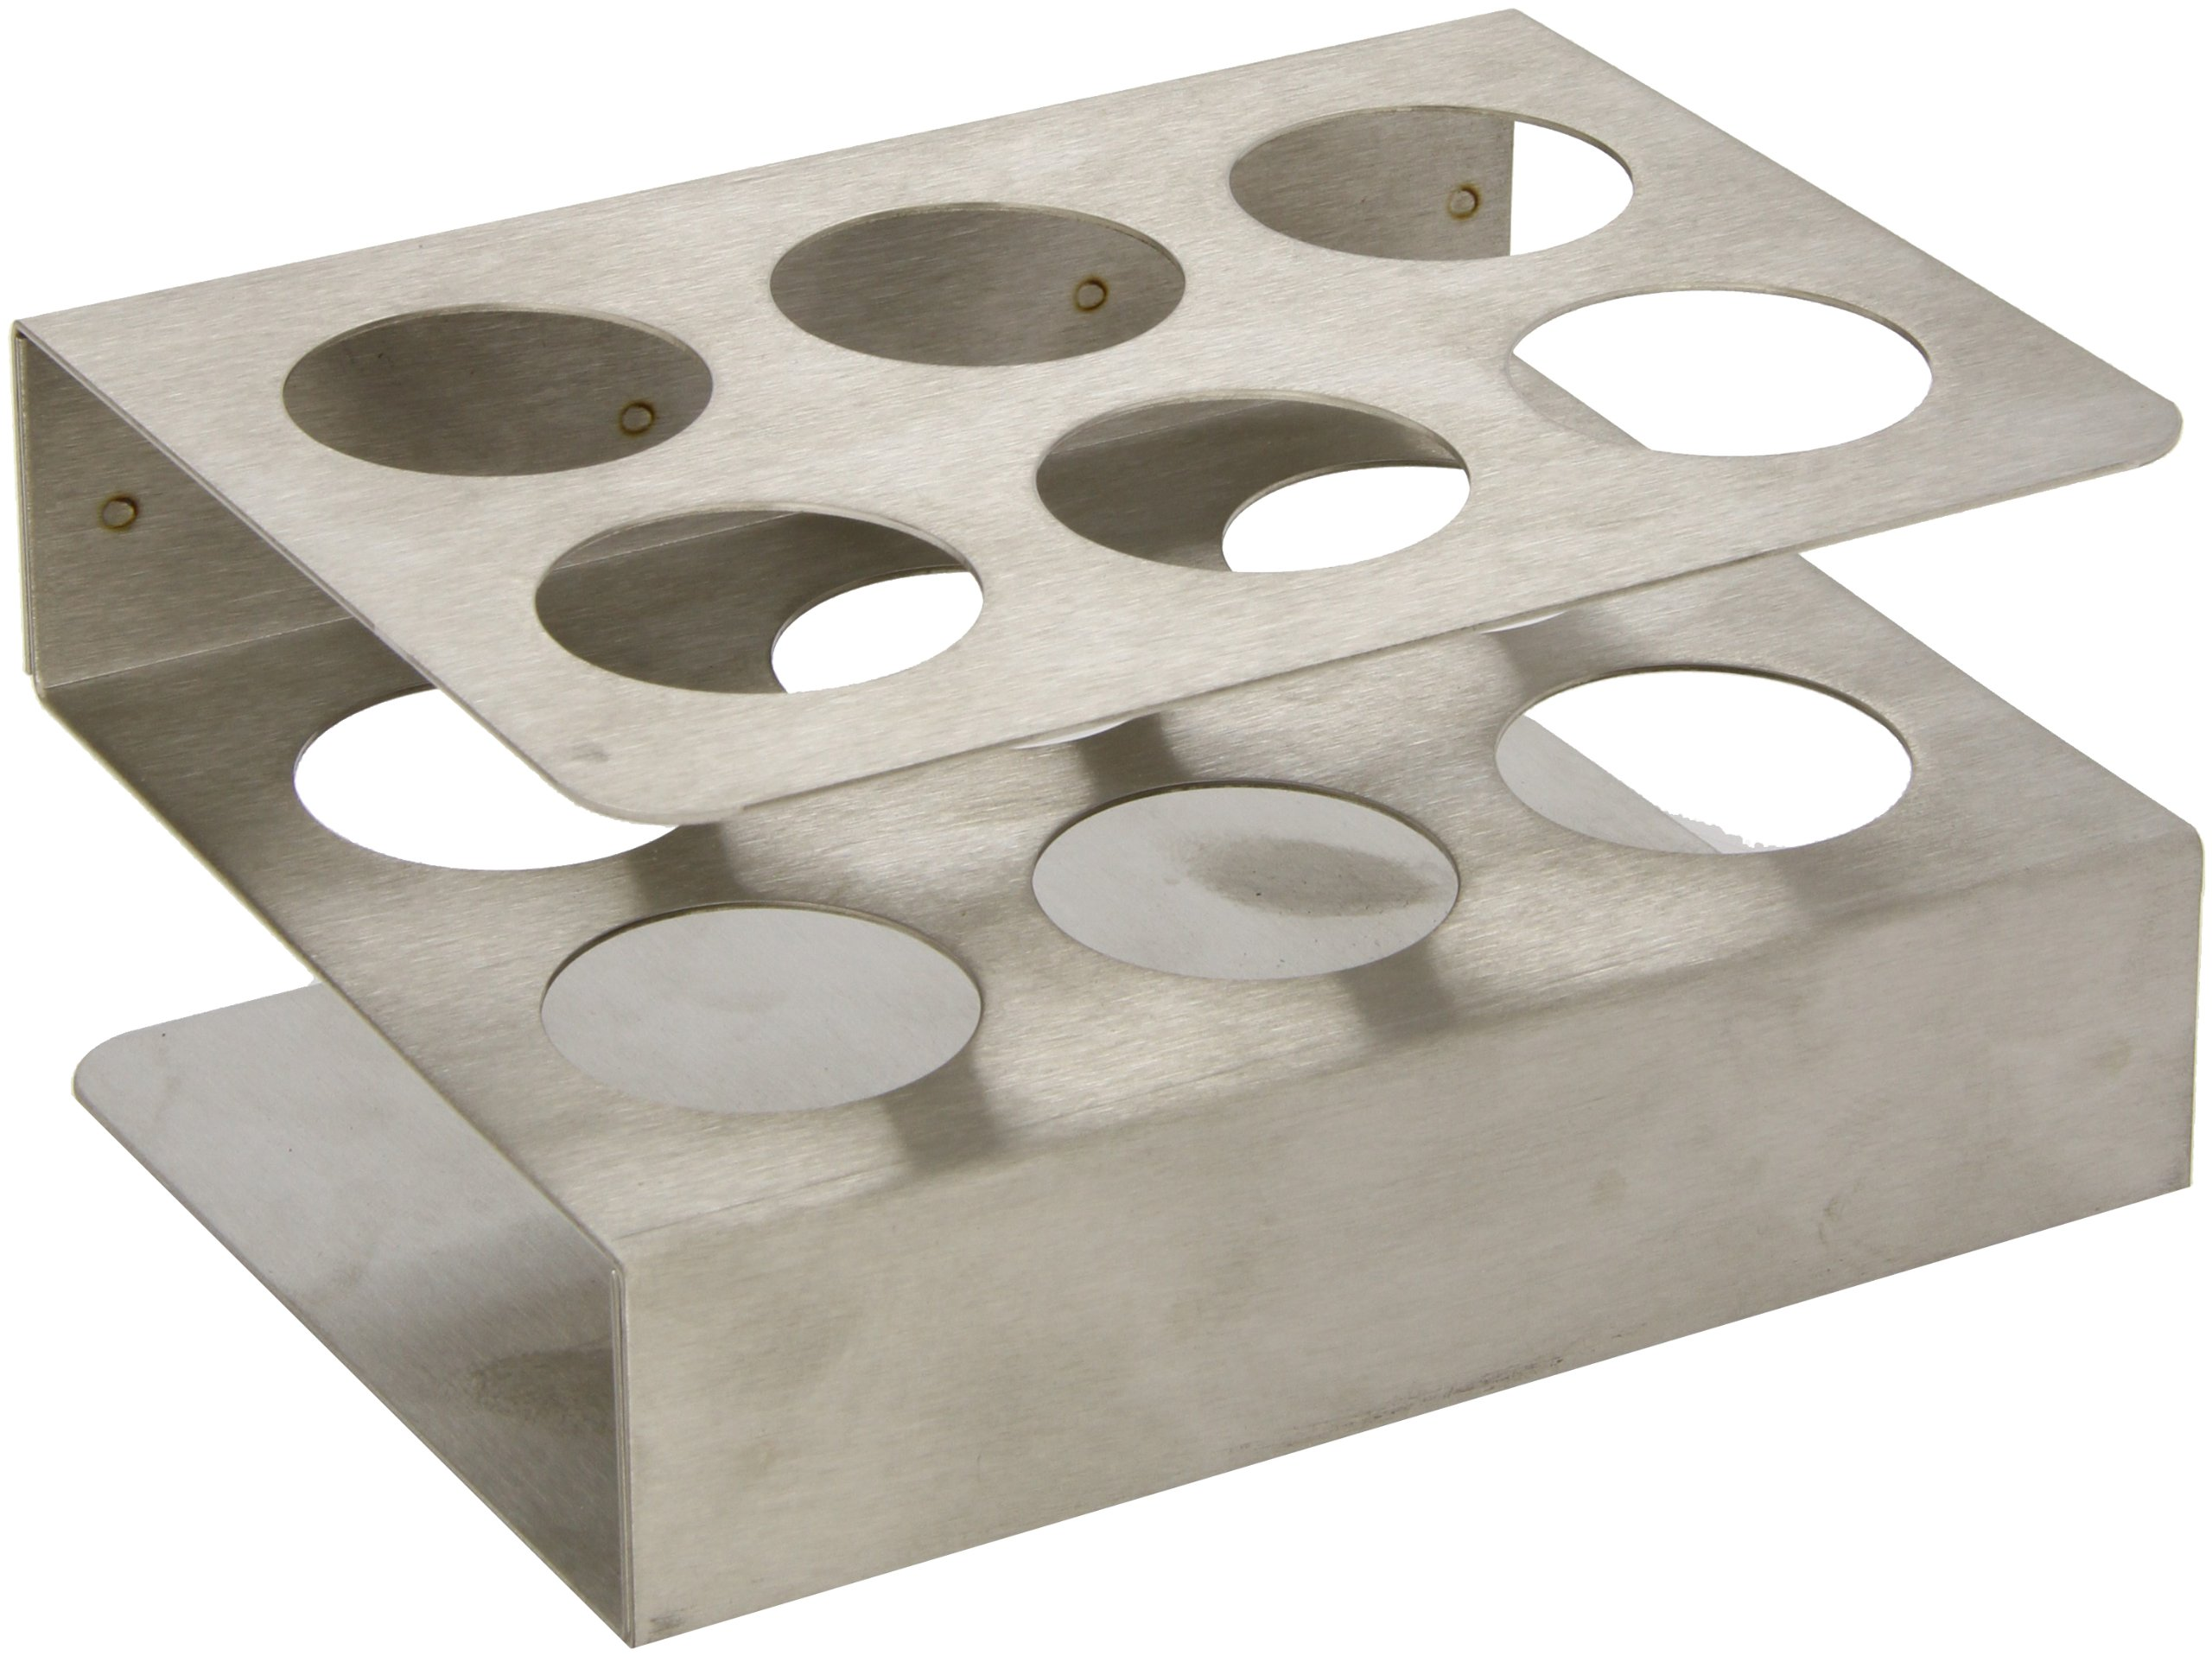 Thermo Scientific ELED 110103 Six-Place Hybridization Bottle Rack for Thermo Scientific 110113, 110115 and 110116